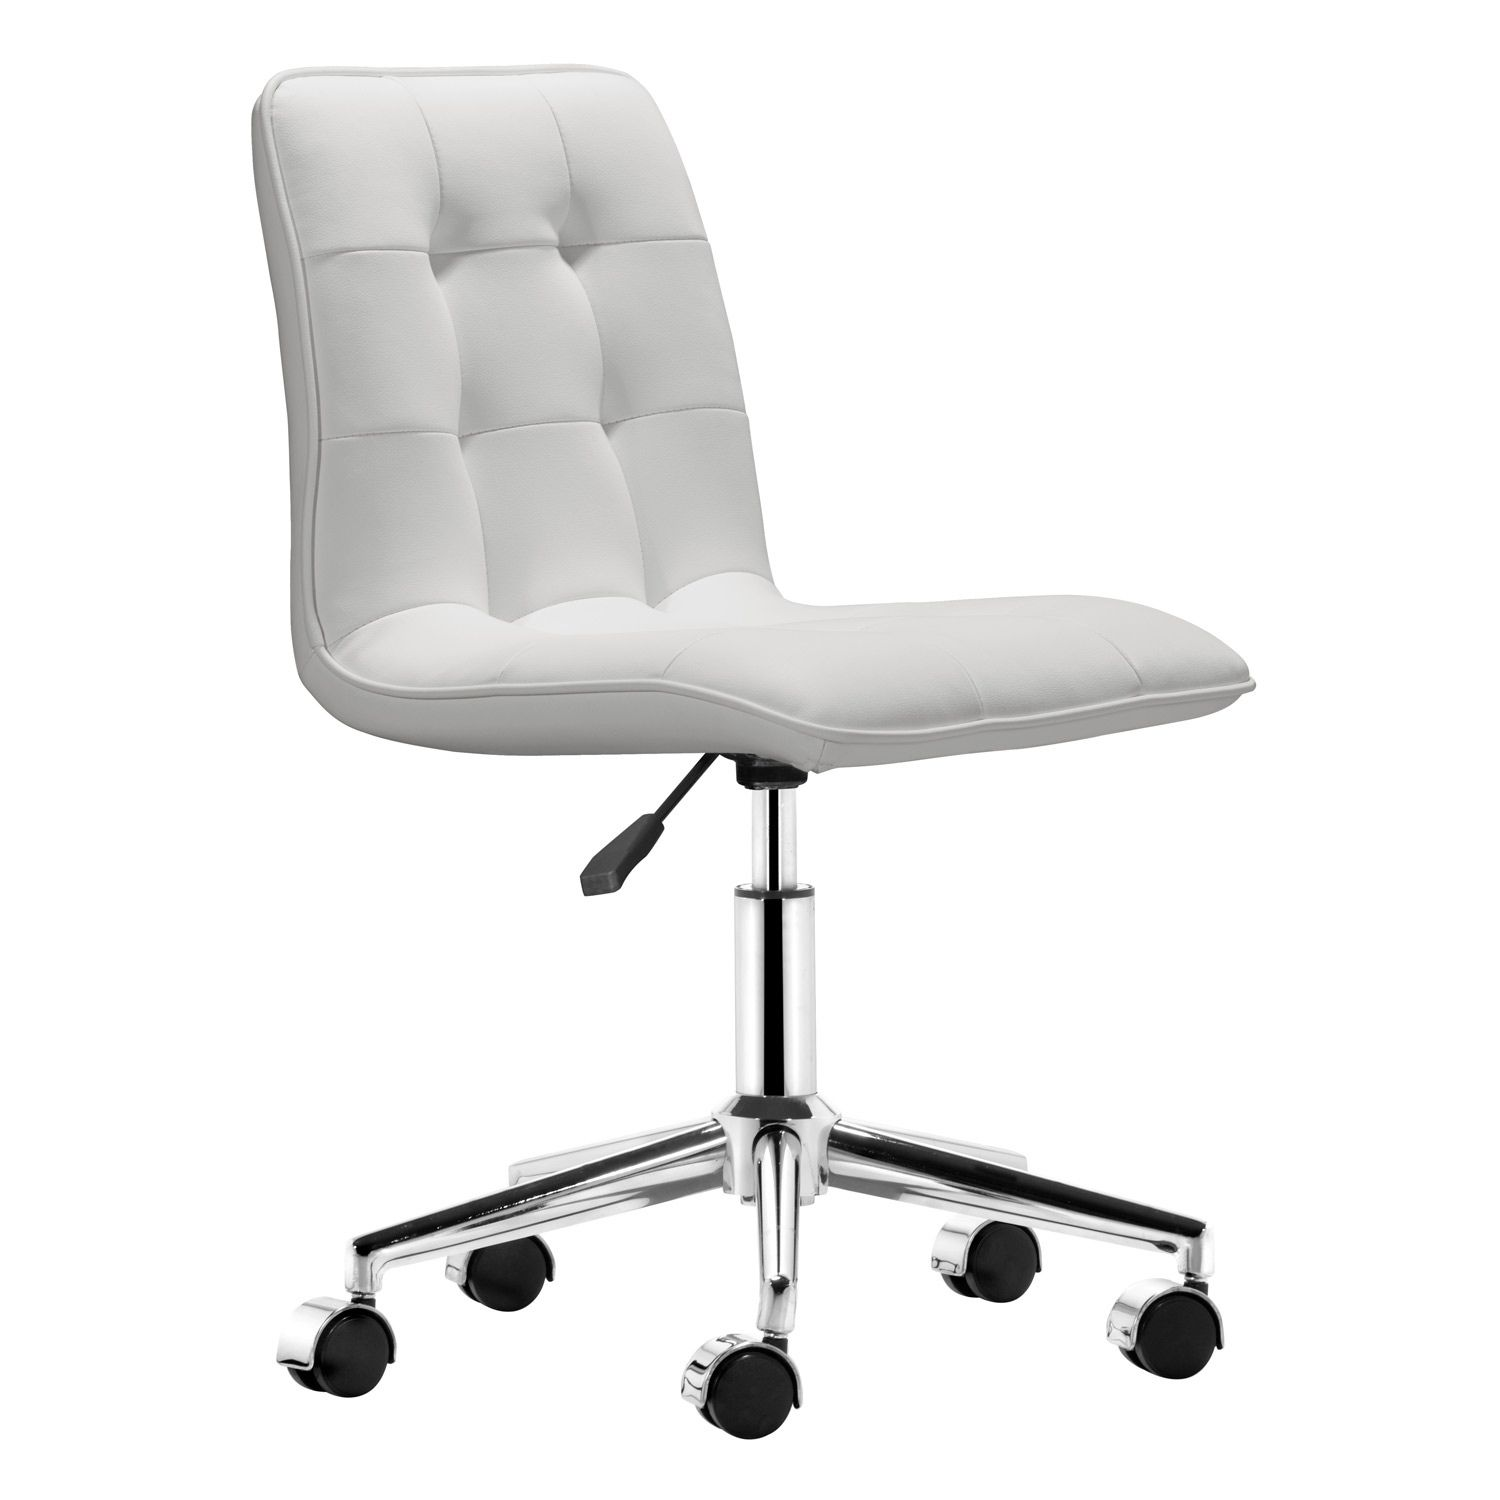 Modern fice Chairs Brisbane Best fice Desk Chair Check more